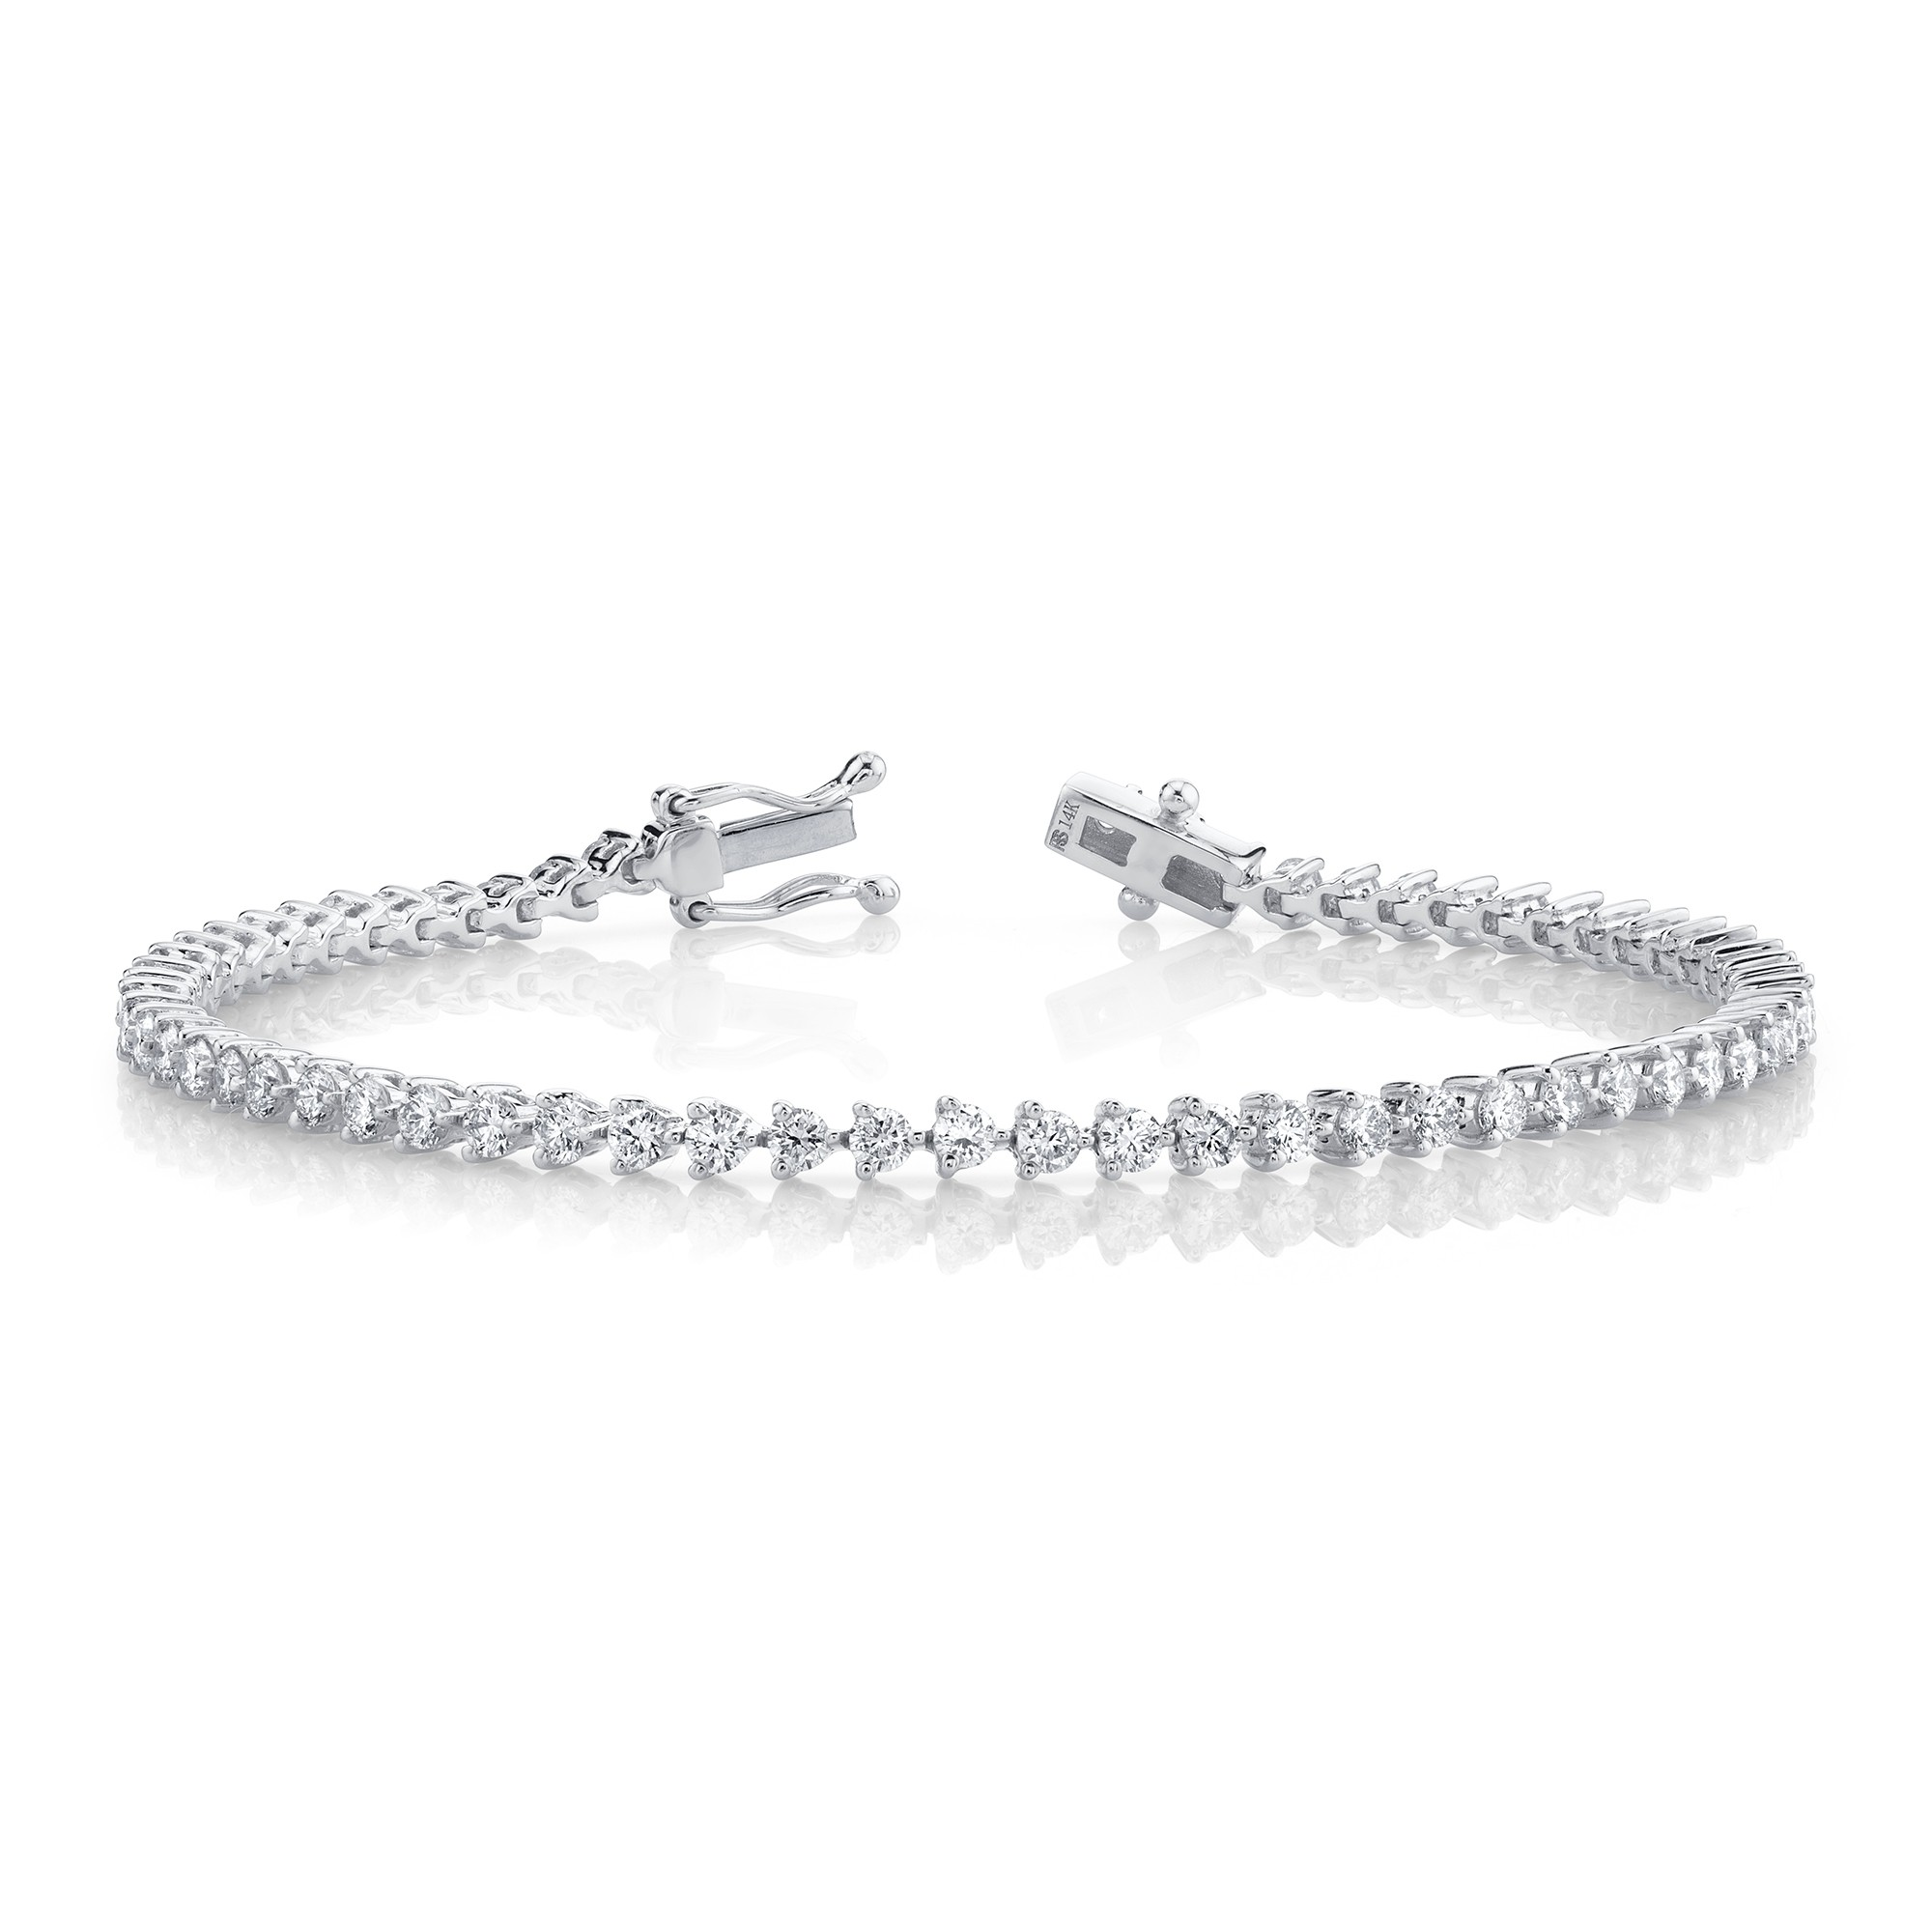 14k White Gold 3 Prong 2.5CT Diamond Tennis Bracelet